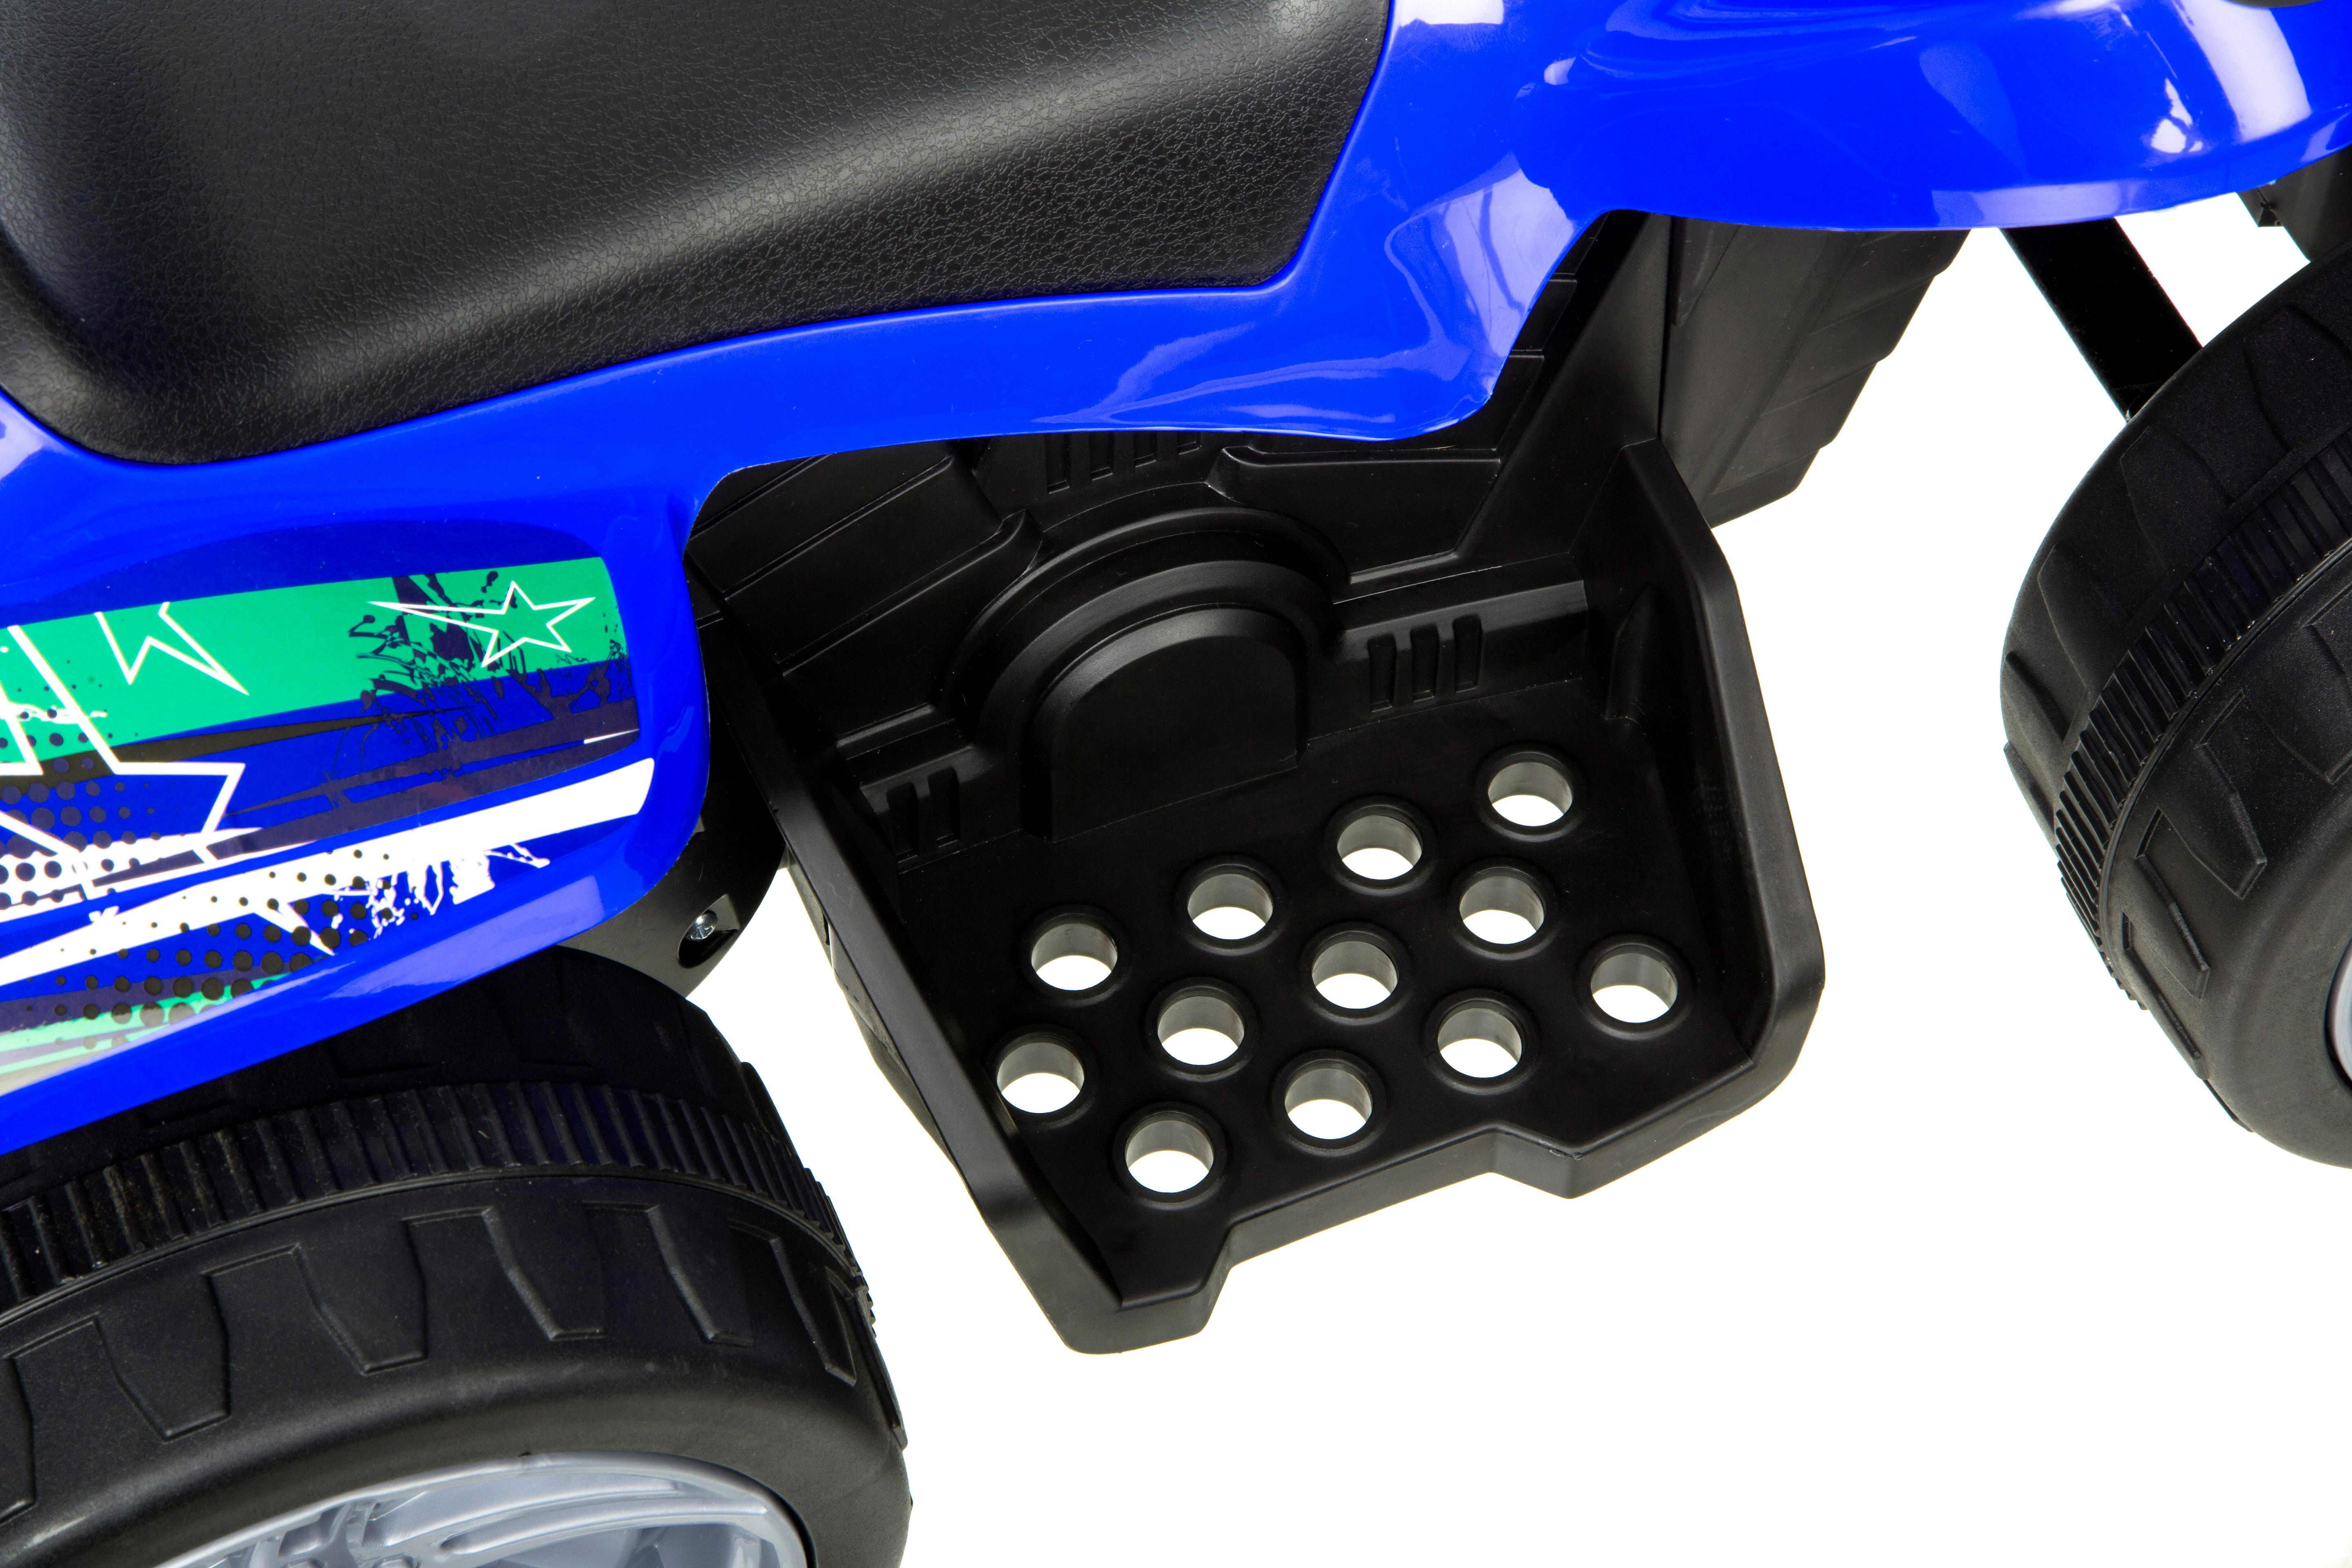 Roadsterz-Volt-6V-Electric-Ride-On-Quad-Rechargeable-Battery-4-Wheels-Kids thumbnail 5